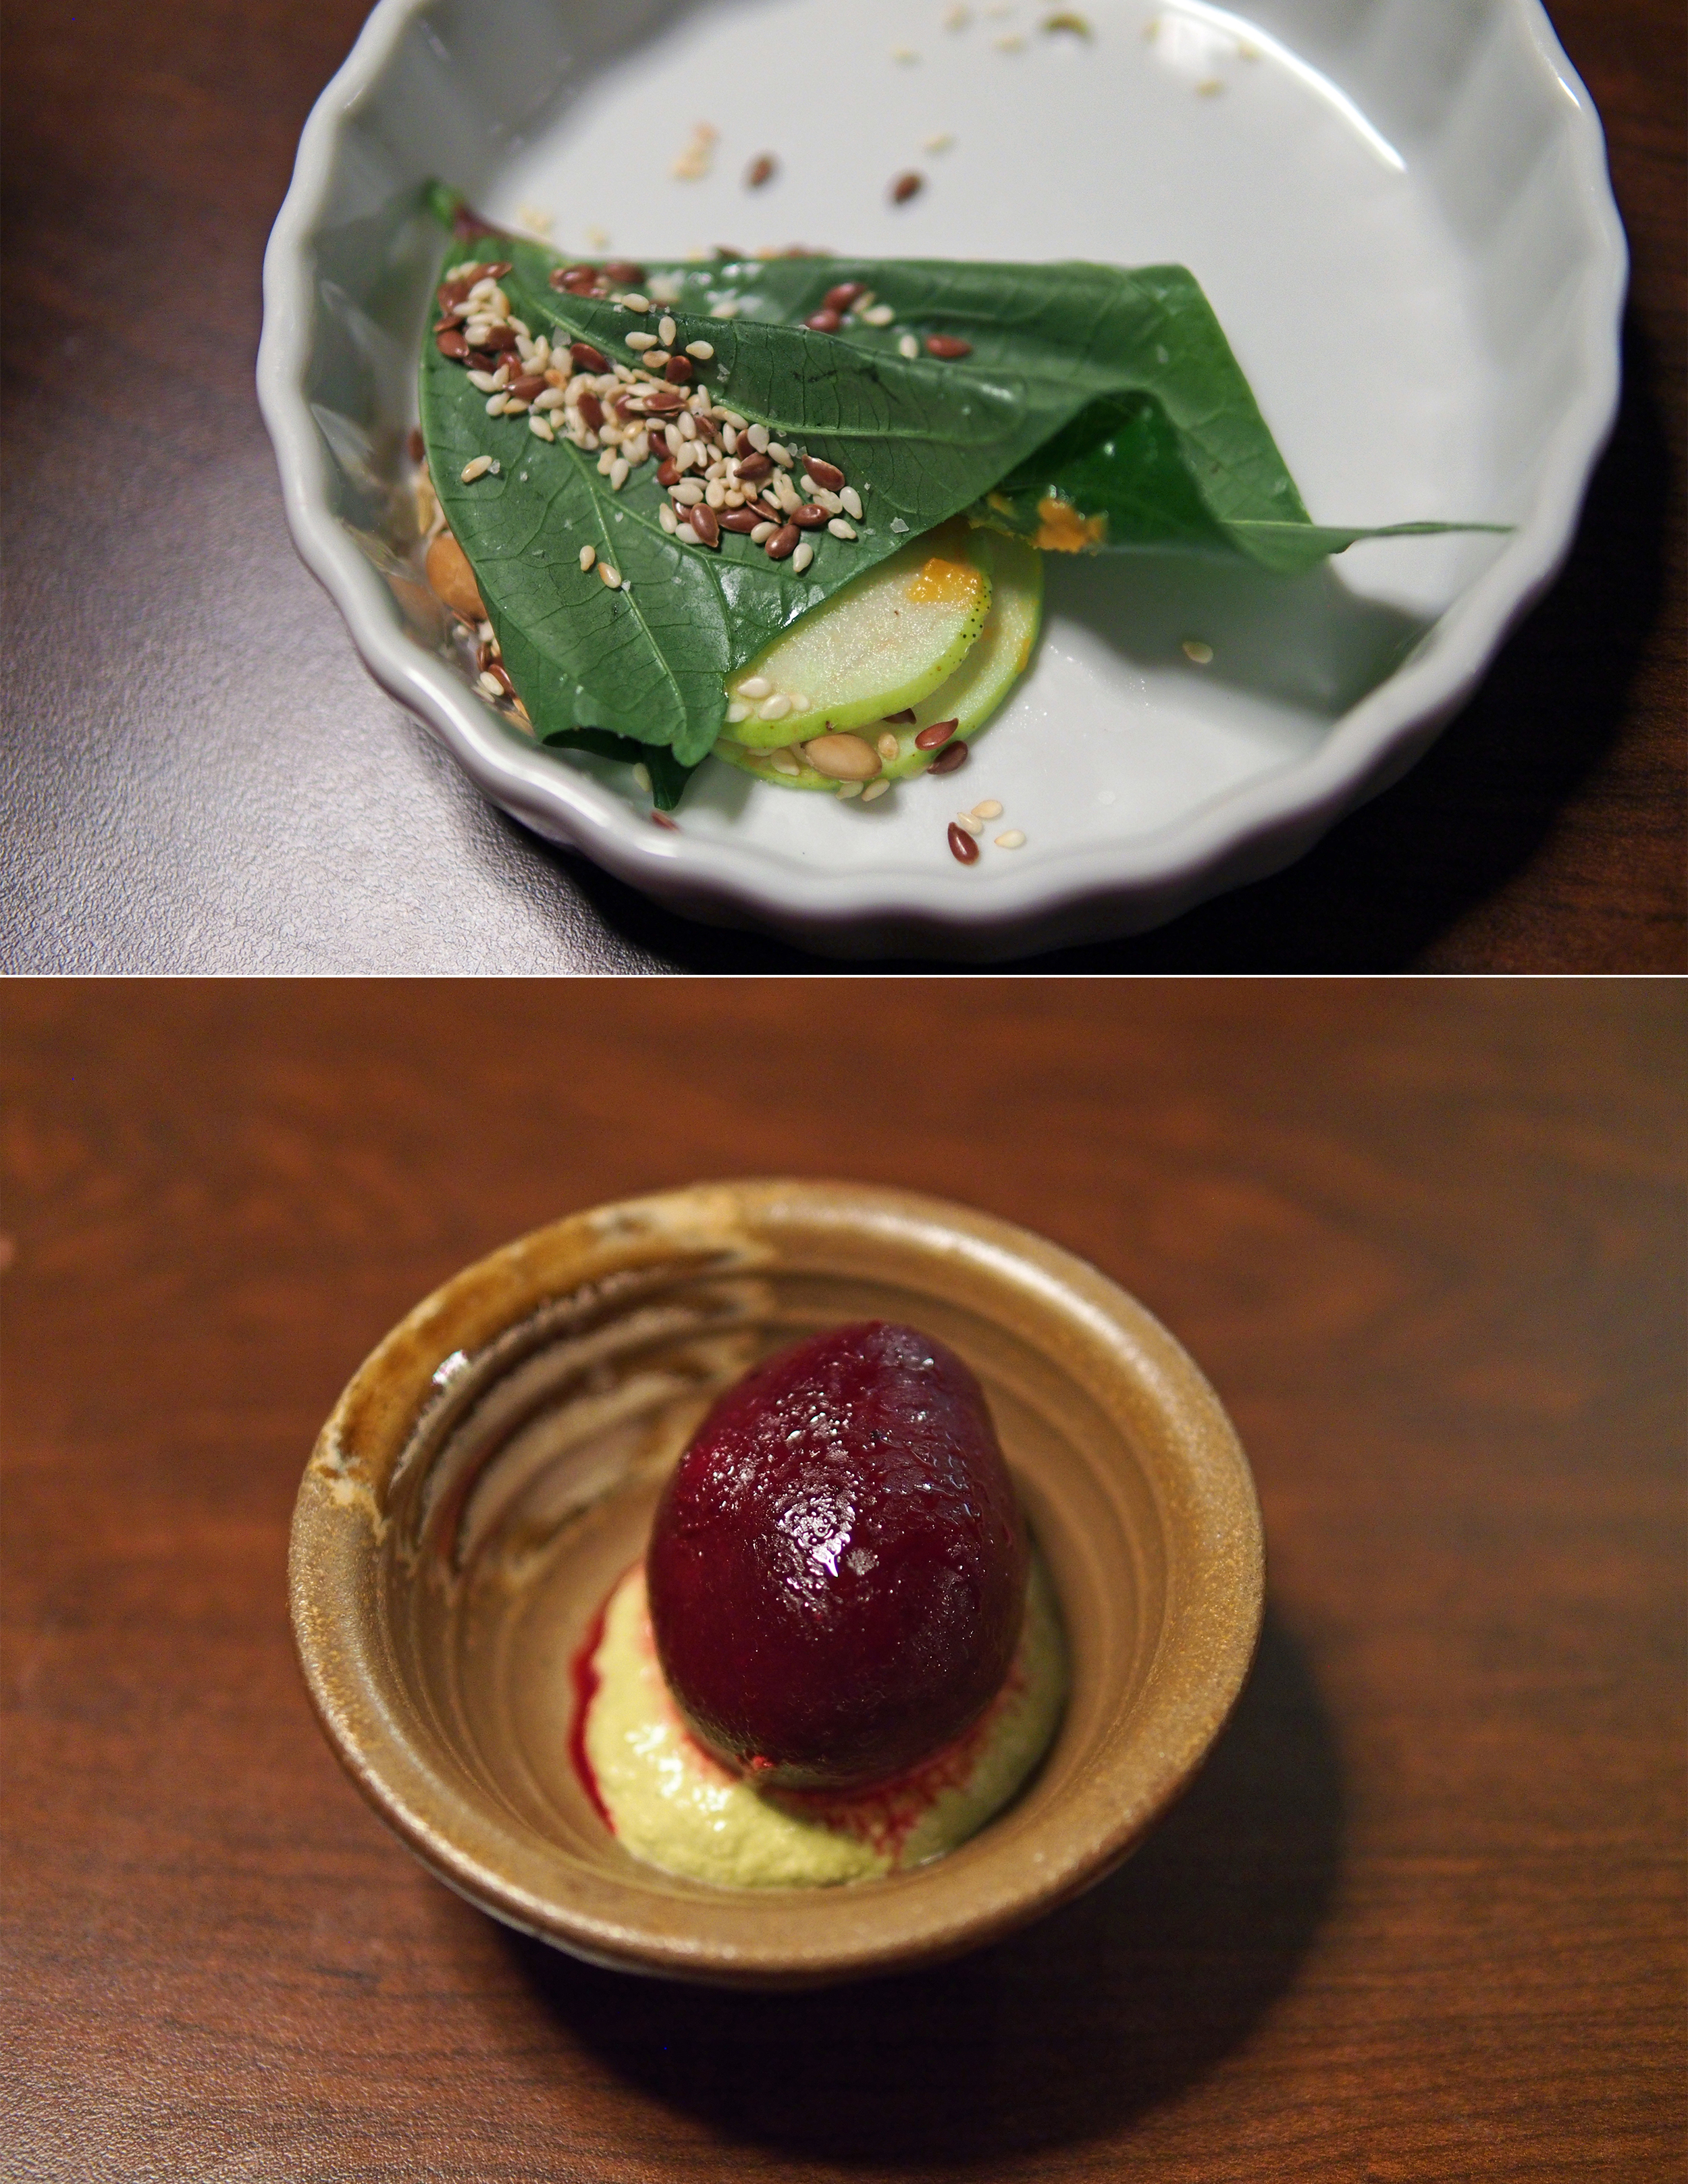 Top: Sweet potato leaf with apples  Bottom: Roasted beet over fermented ramps